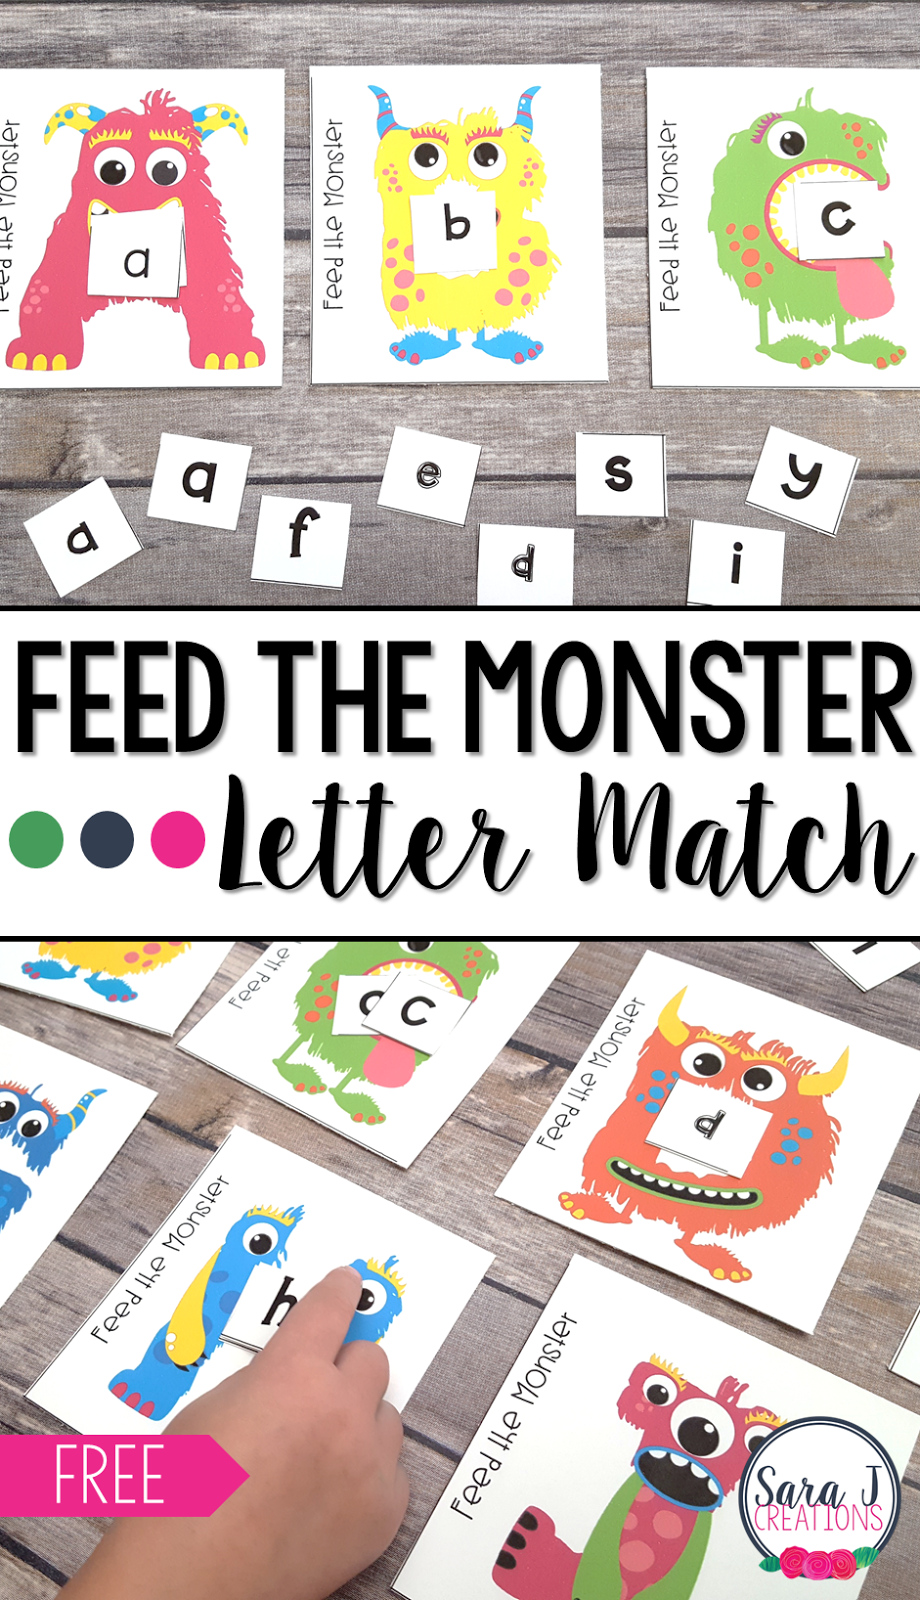 Free Feed The Monster Alphabet Match Practice Matching Upper And Lowercase Letters A Alphabet Games Preschool Alphabet Preschool Alphabet Activities Preschool [ 1600 x 920 Pixel ]